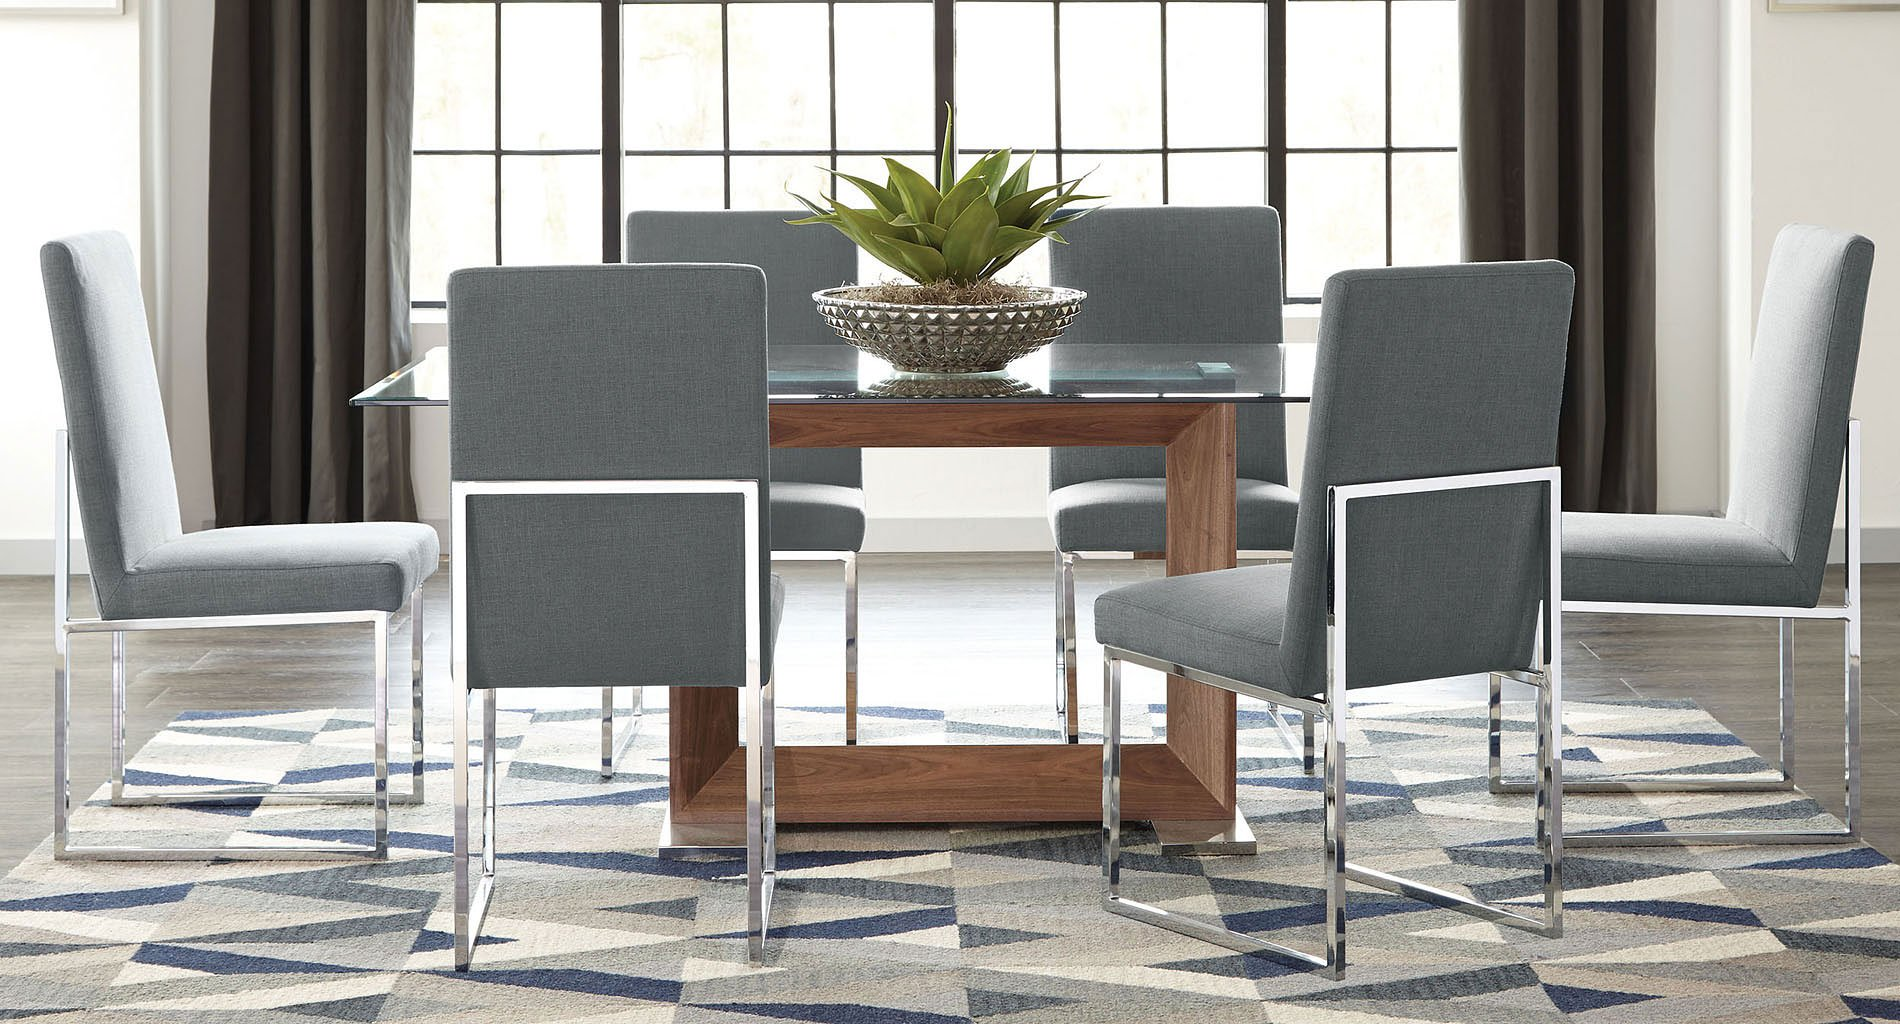 modern kitchen furniture sets jackson modern glass dining set w grey chairs formal dining sets dining room and kitchen 1859